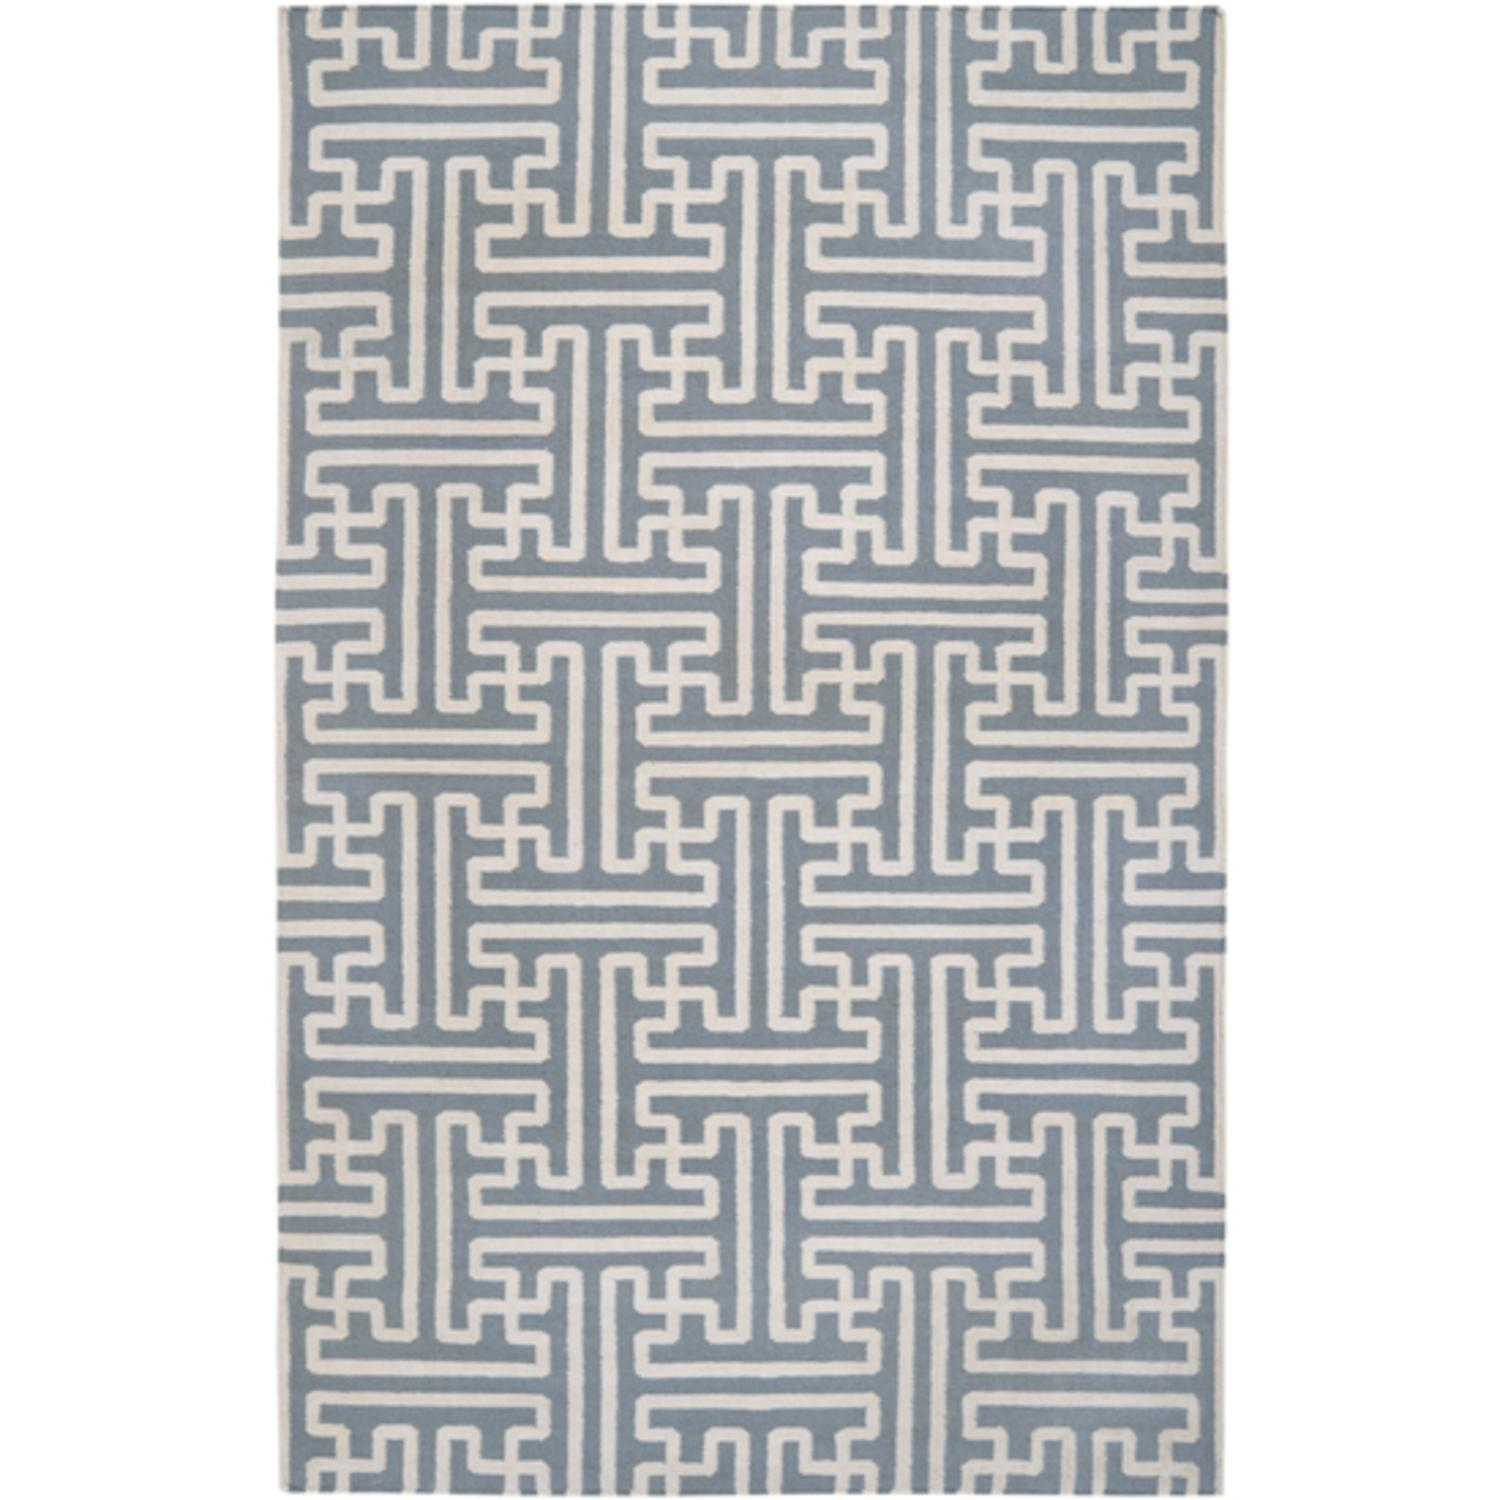 5' x 8' Block Pillars Winter White and Slate Gray Wool Area Throw Rug